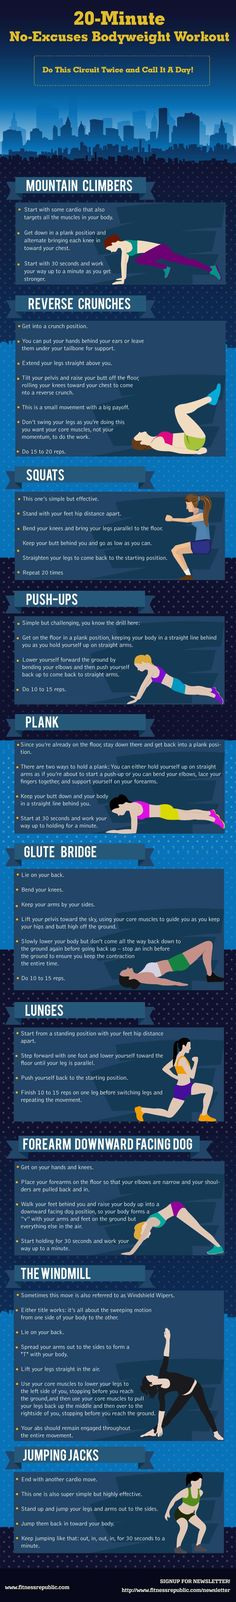 20-Minute No-Excuses Bodyweight Workout